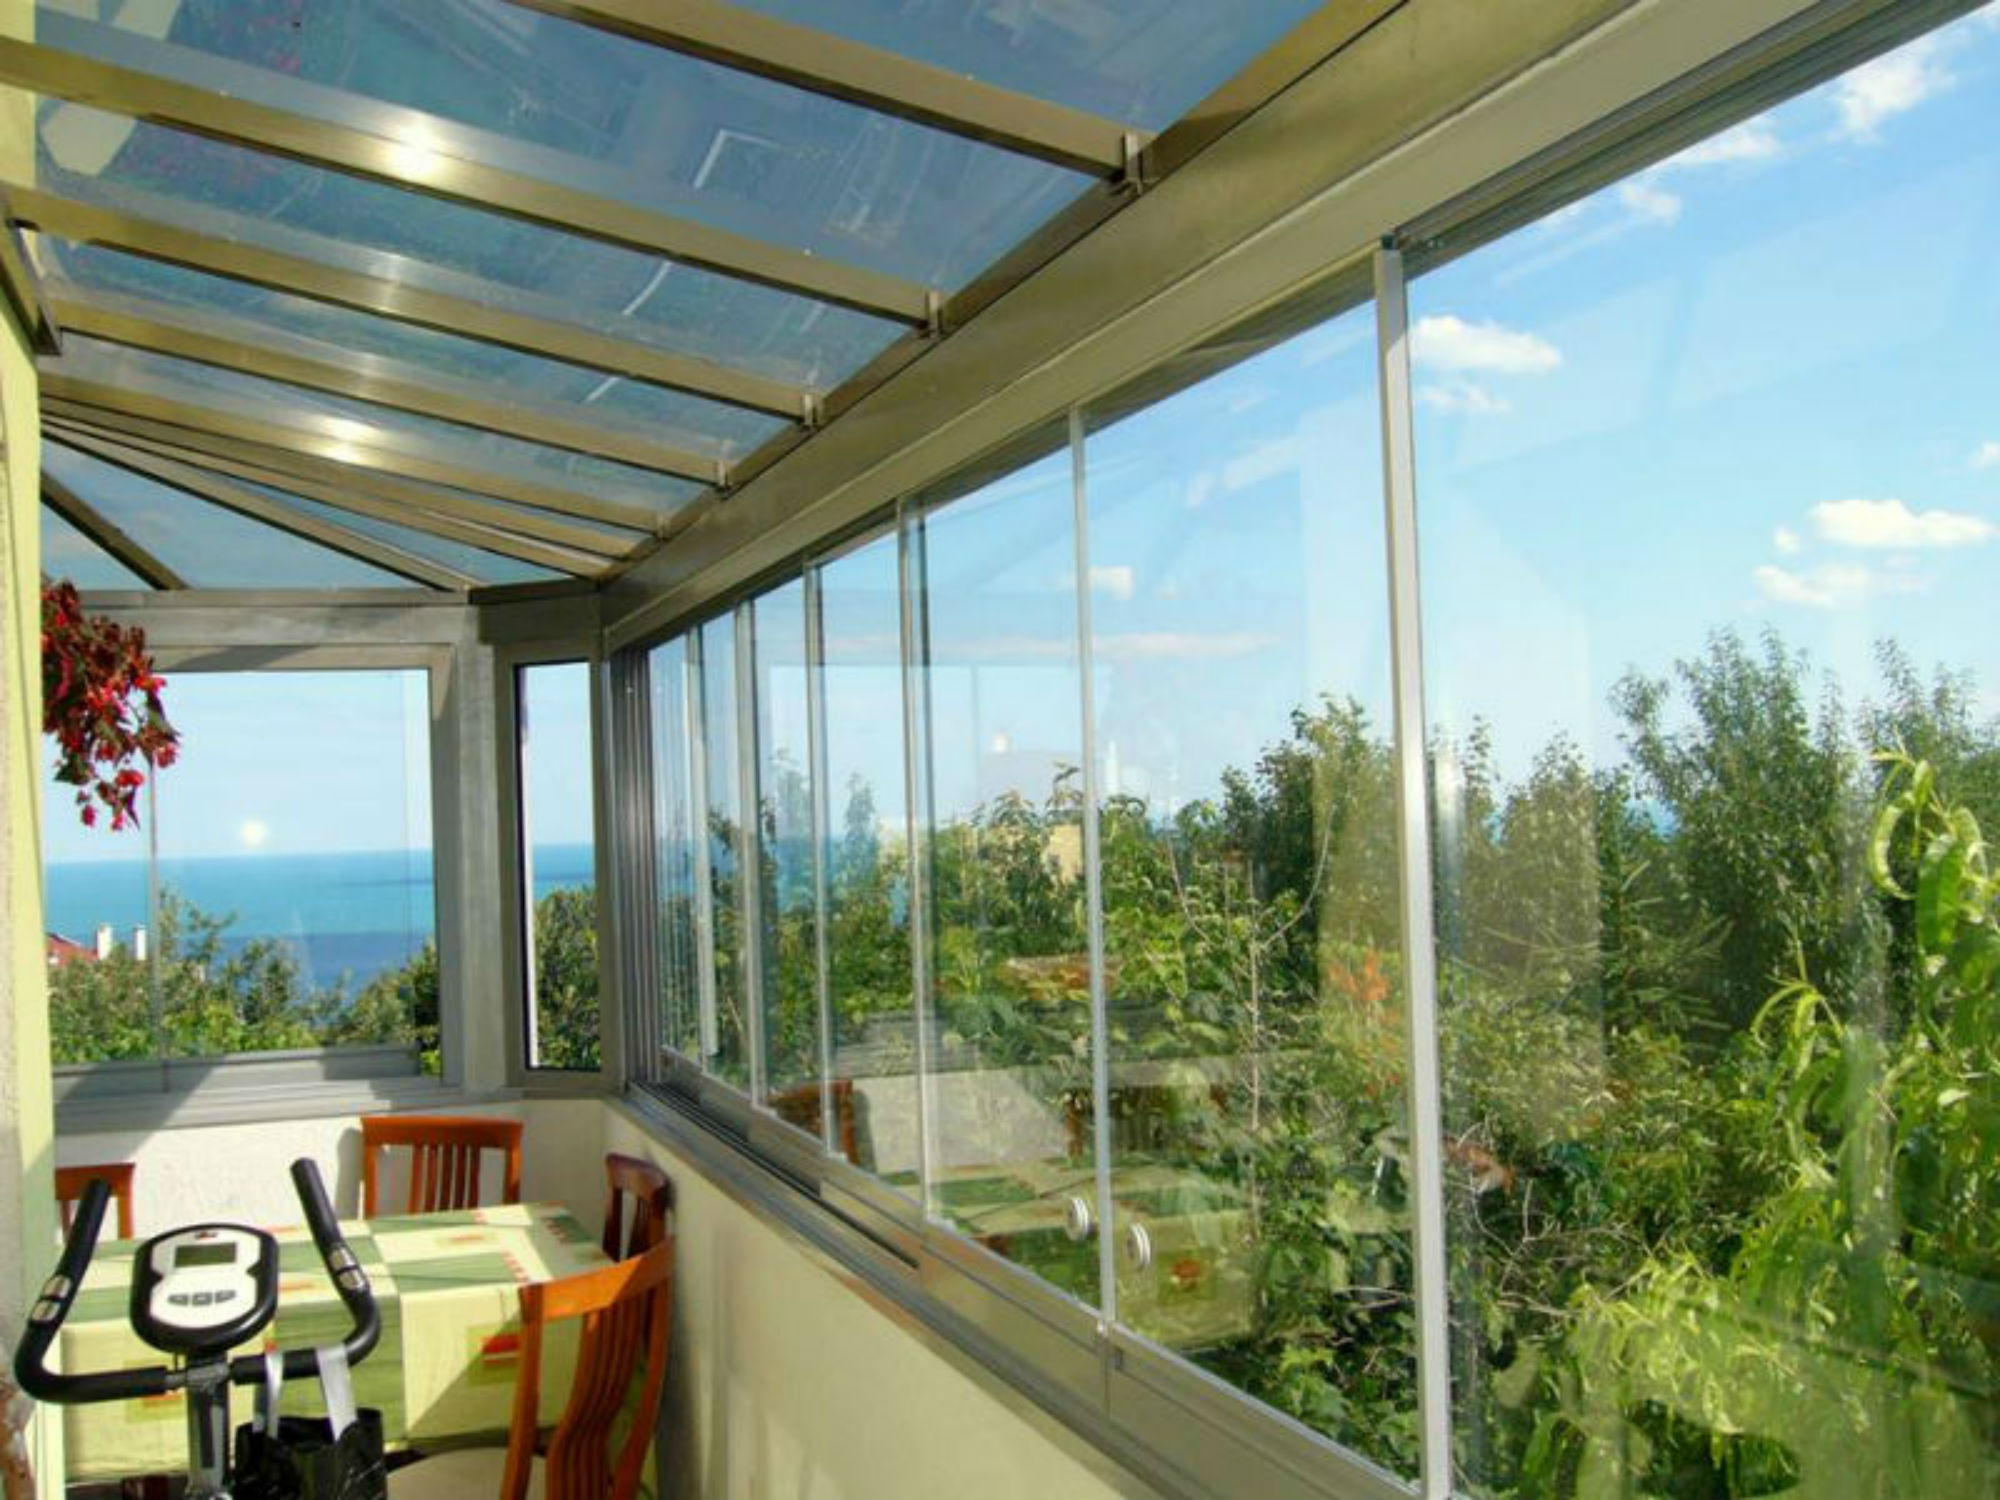 Folding glass system and polycarbonate roof